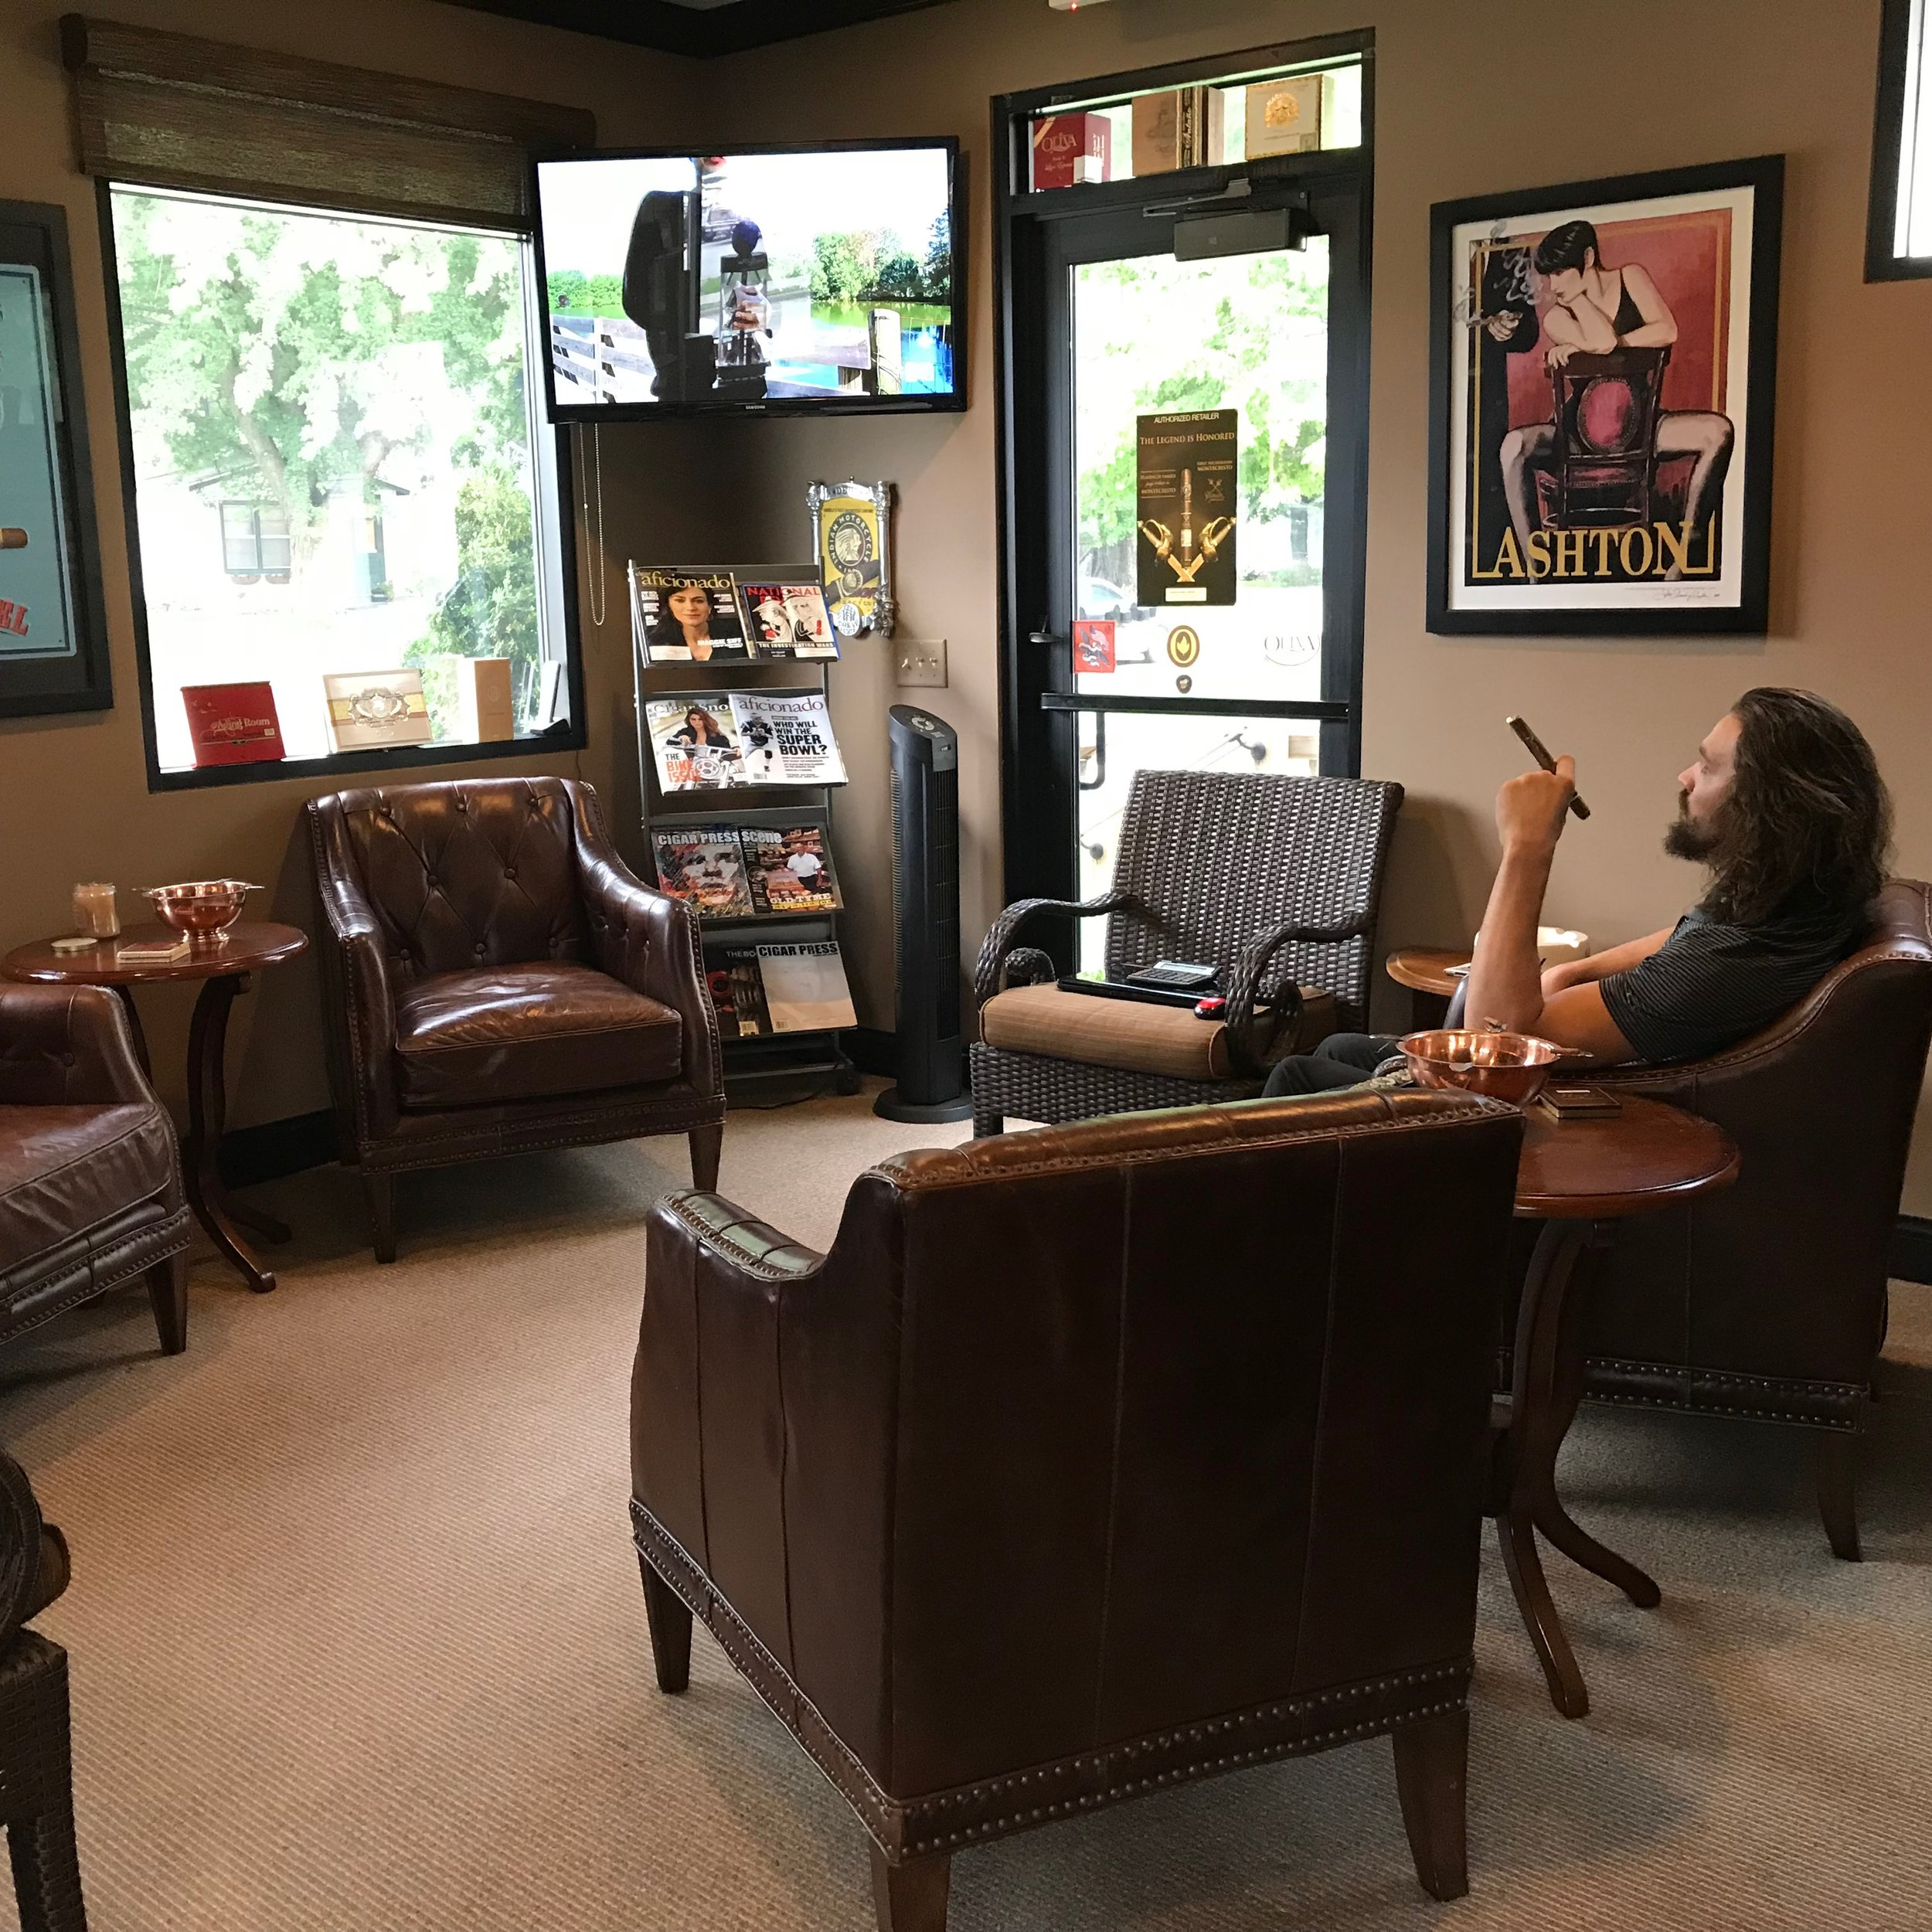 Enjoy a cigar in the lounge